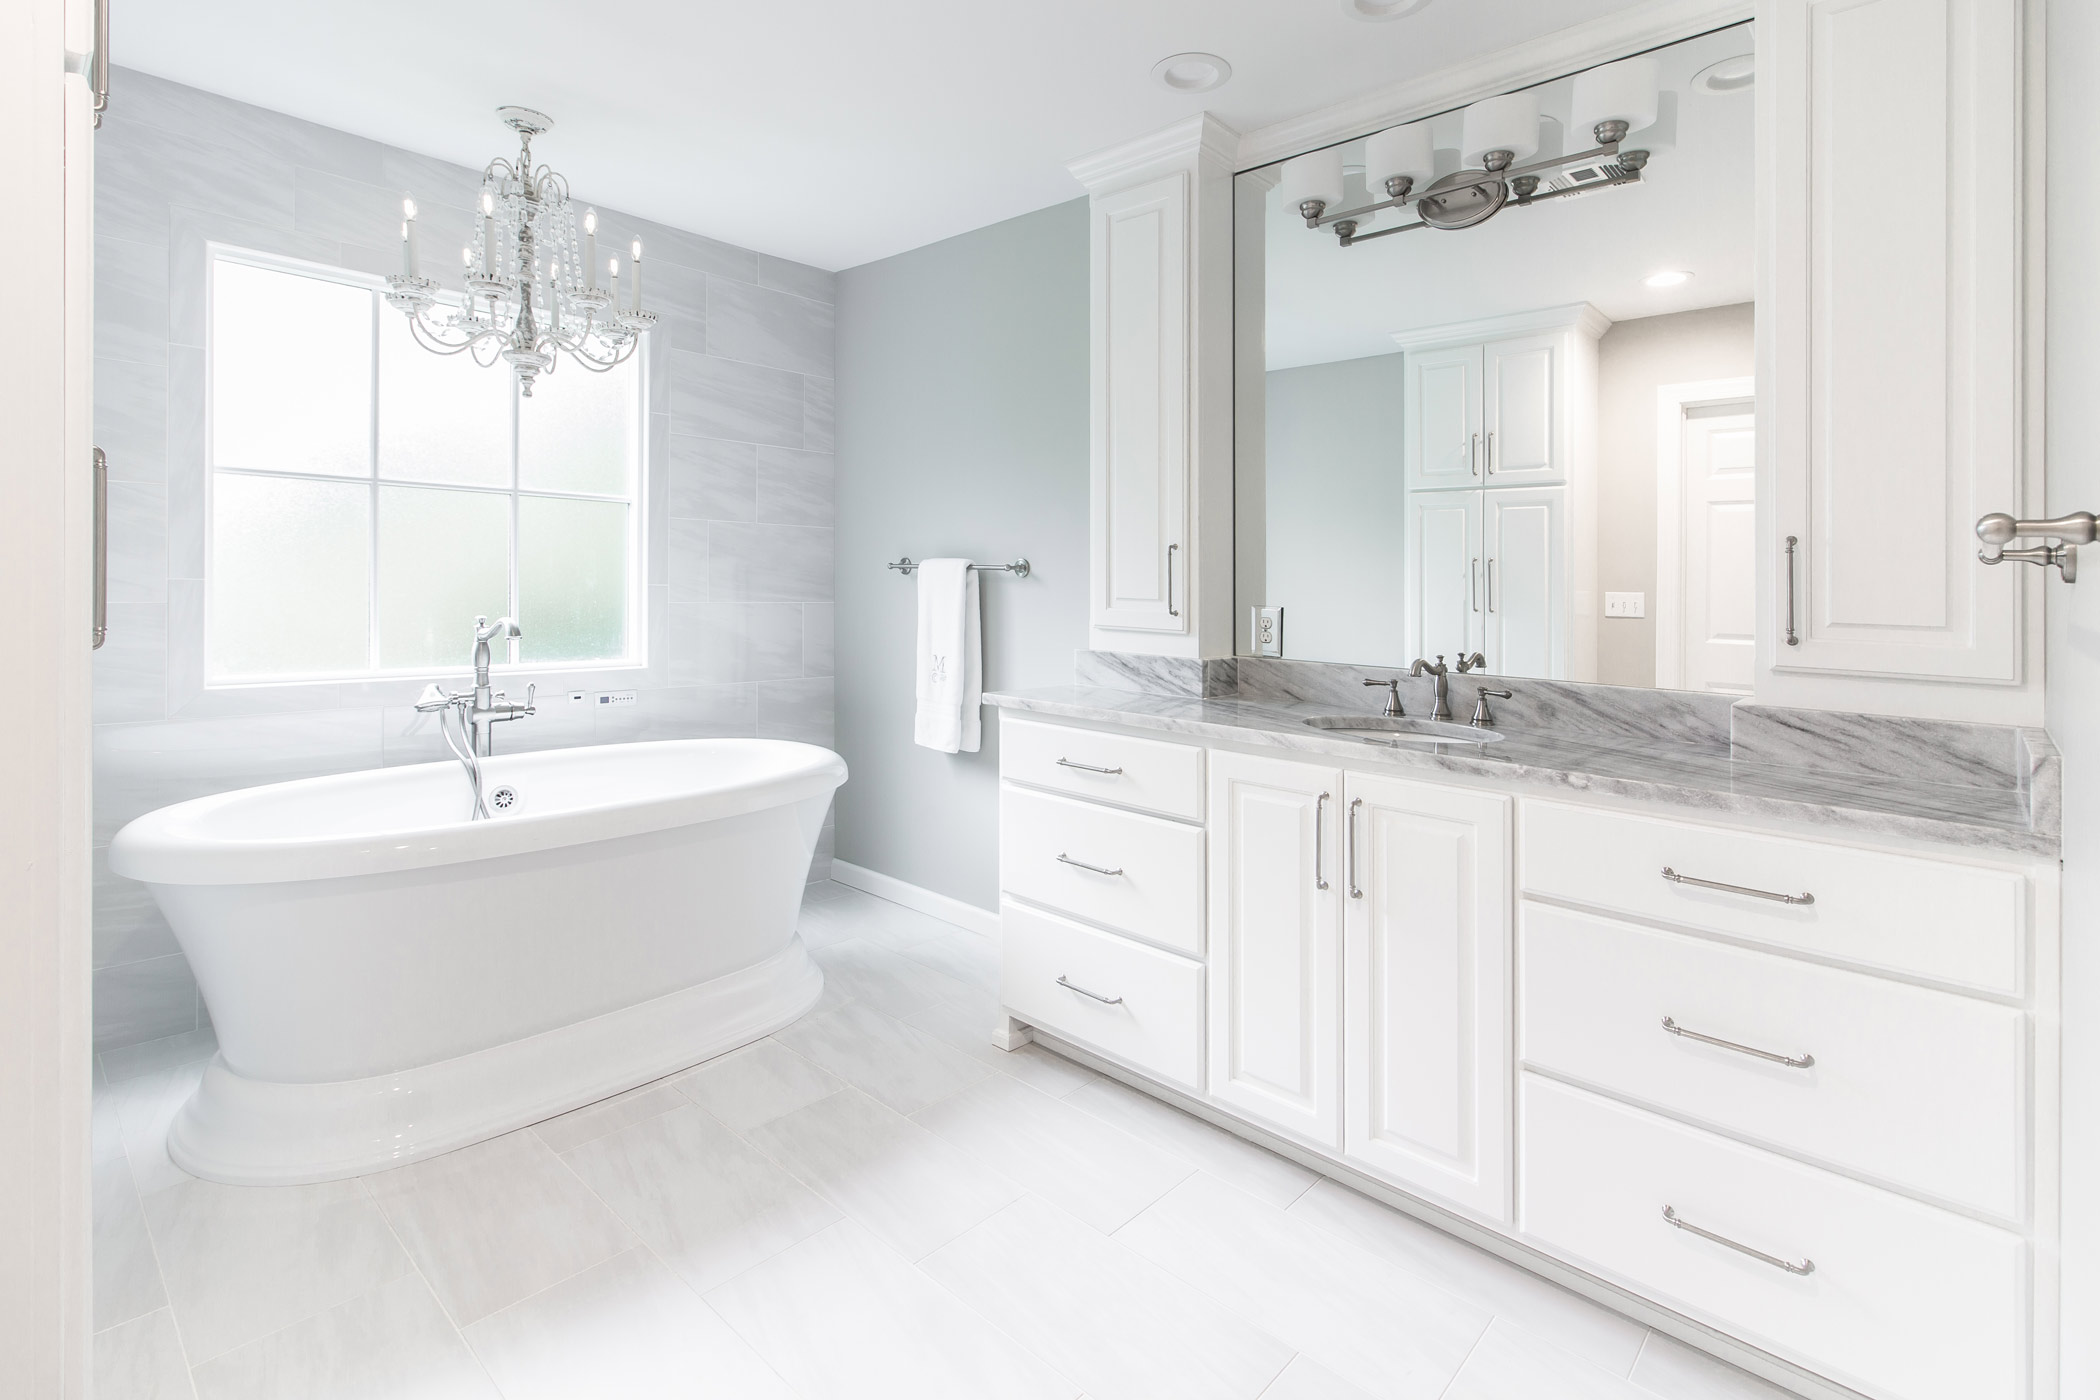 Bathroom Remodel Projects In The Tulsa